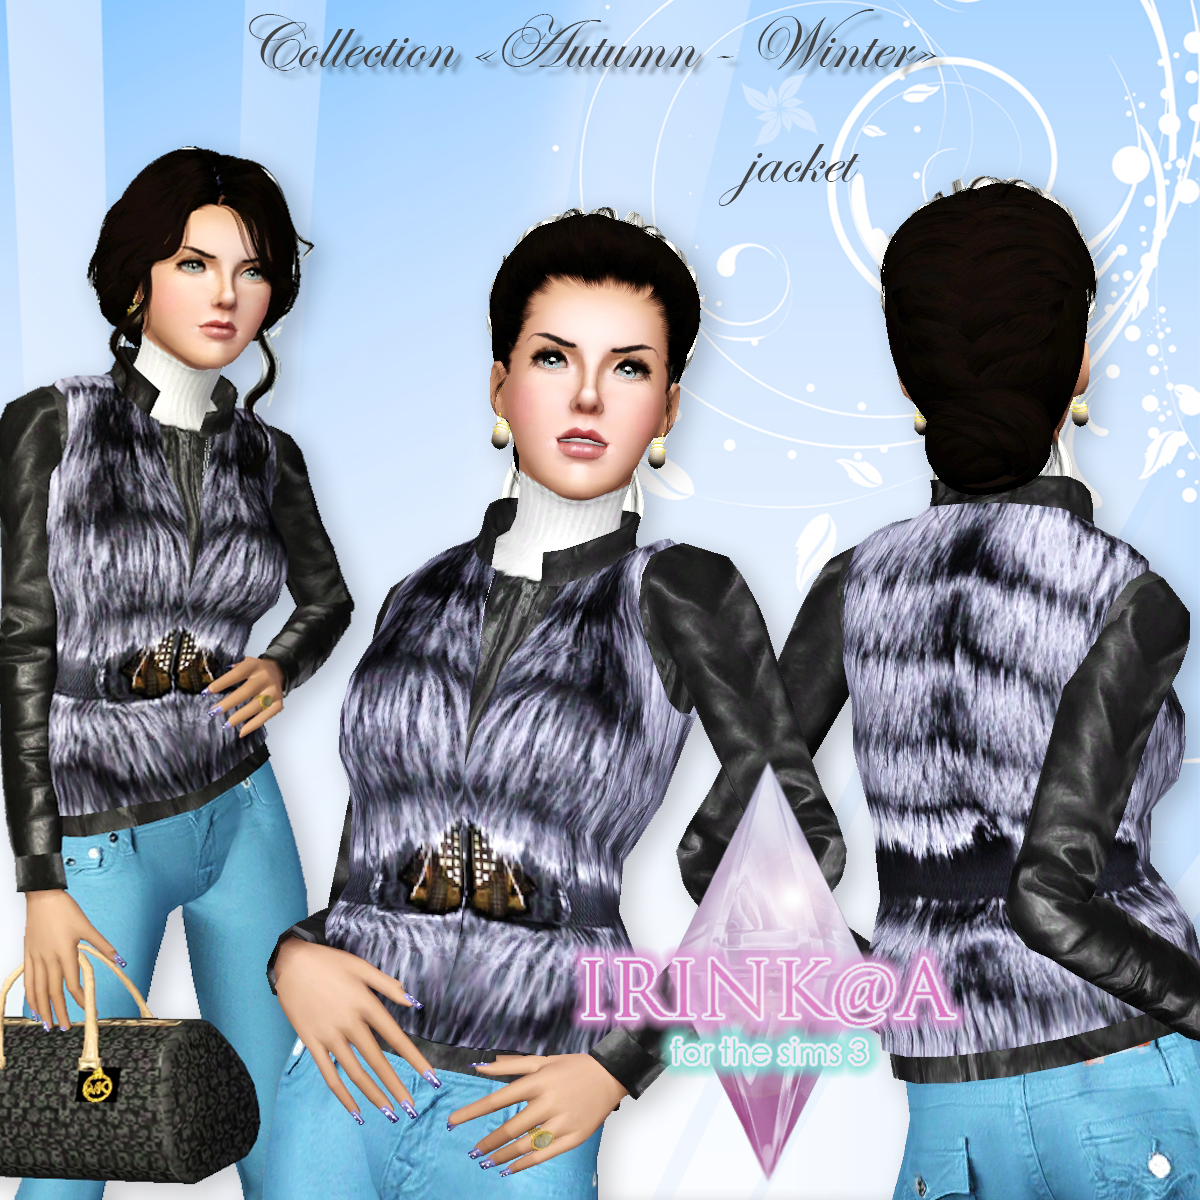 Collection Autumn - Winter by Irinka